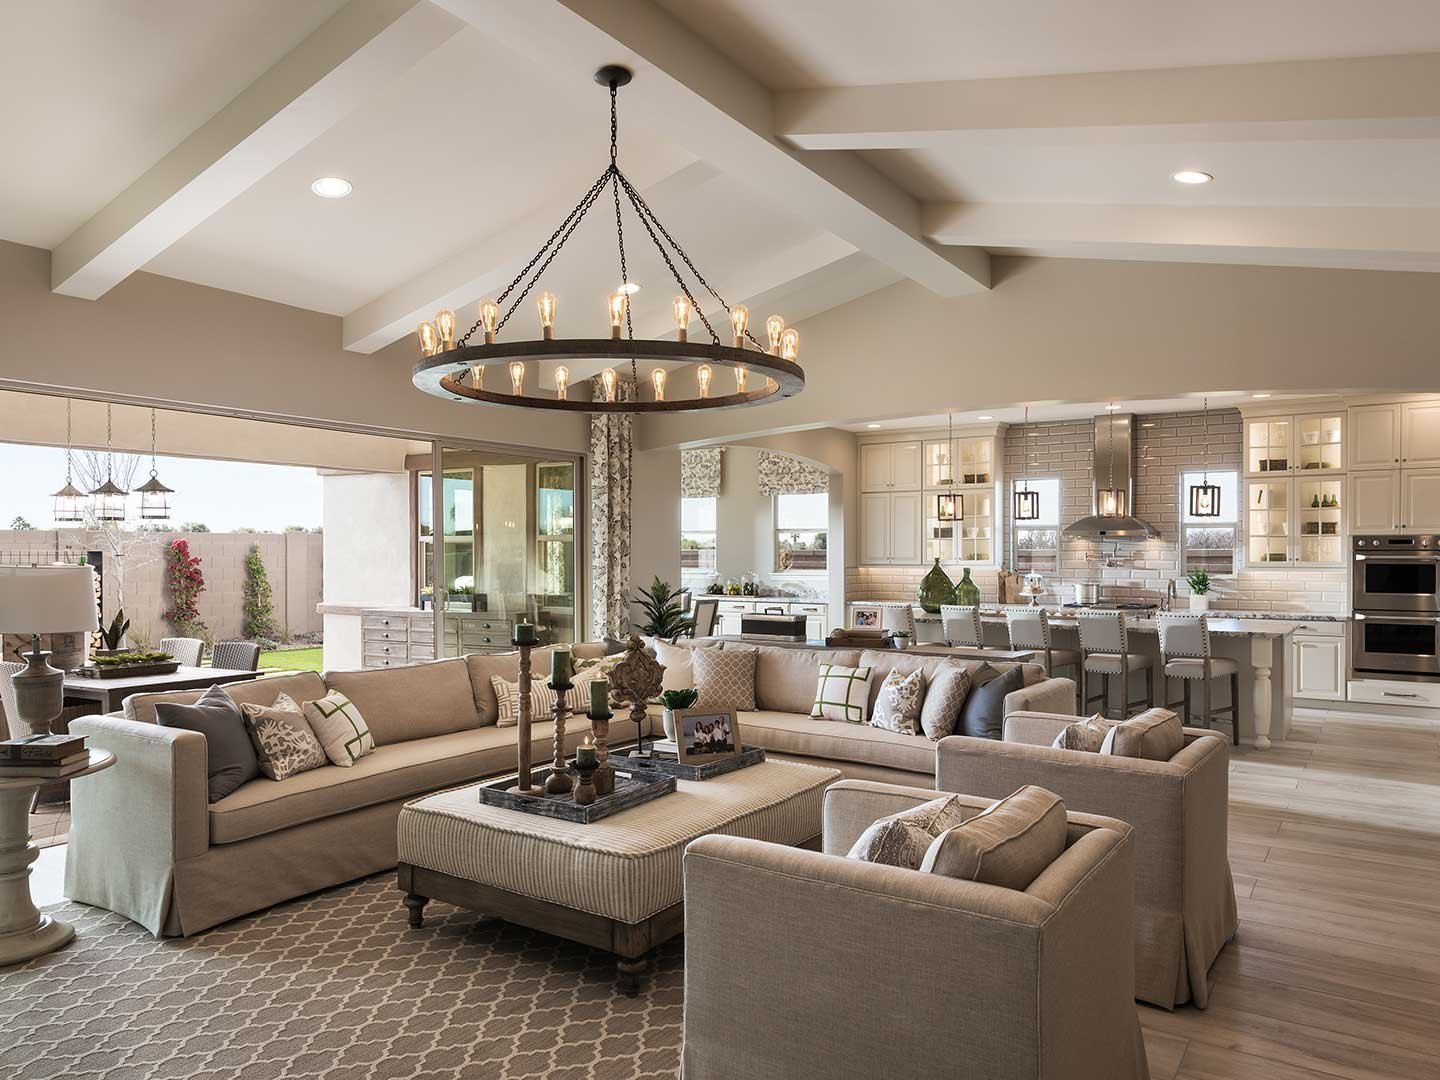 New Homes For Sale In Chandler